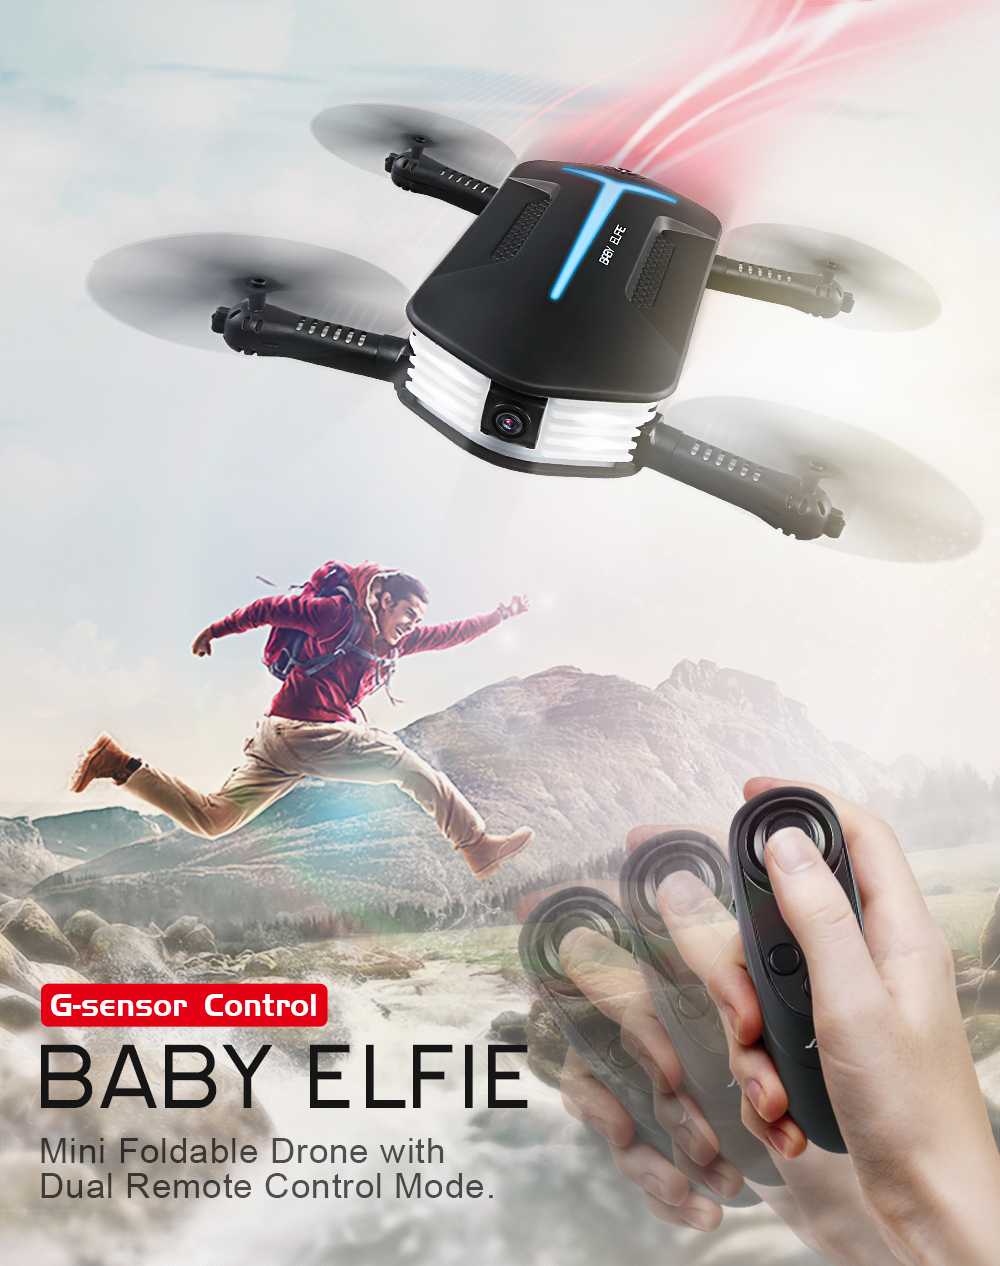 Per-order JJR/C JJRC H37 Mini FPV RC Drone WiFi 720P Camera Gravity Sensor Mode RC Quadcopter Helicopter VS eachine E52